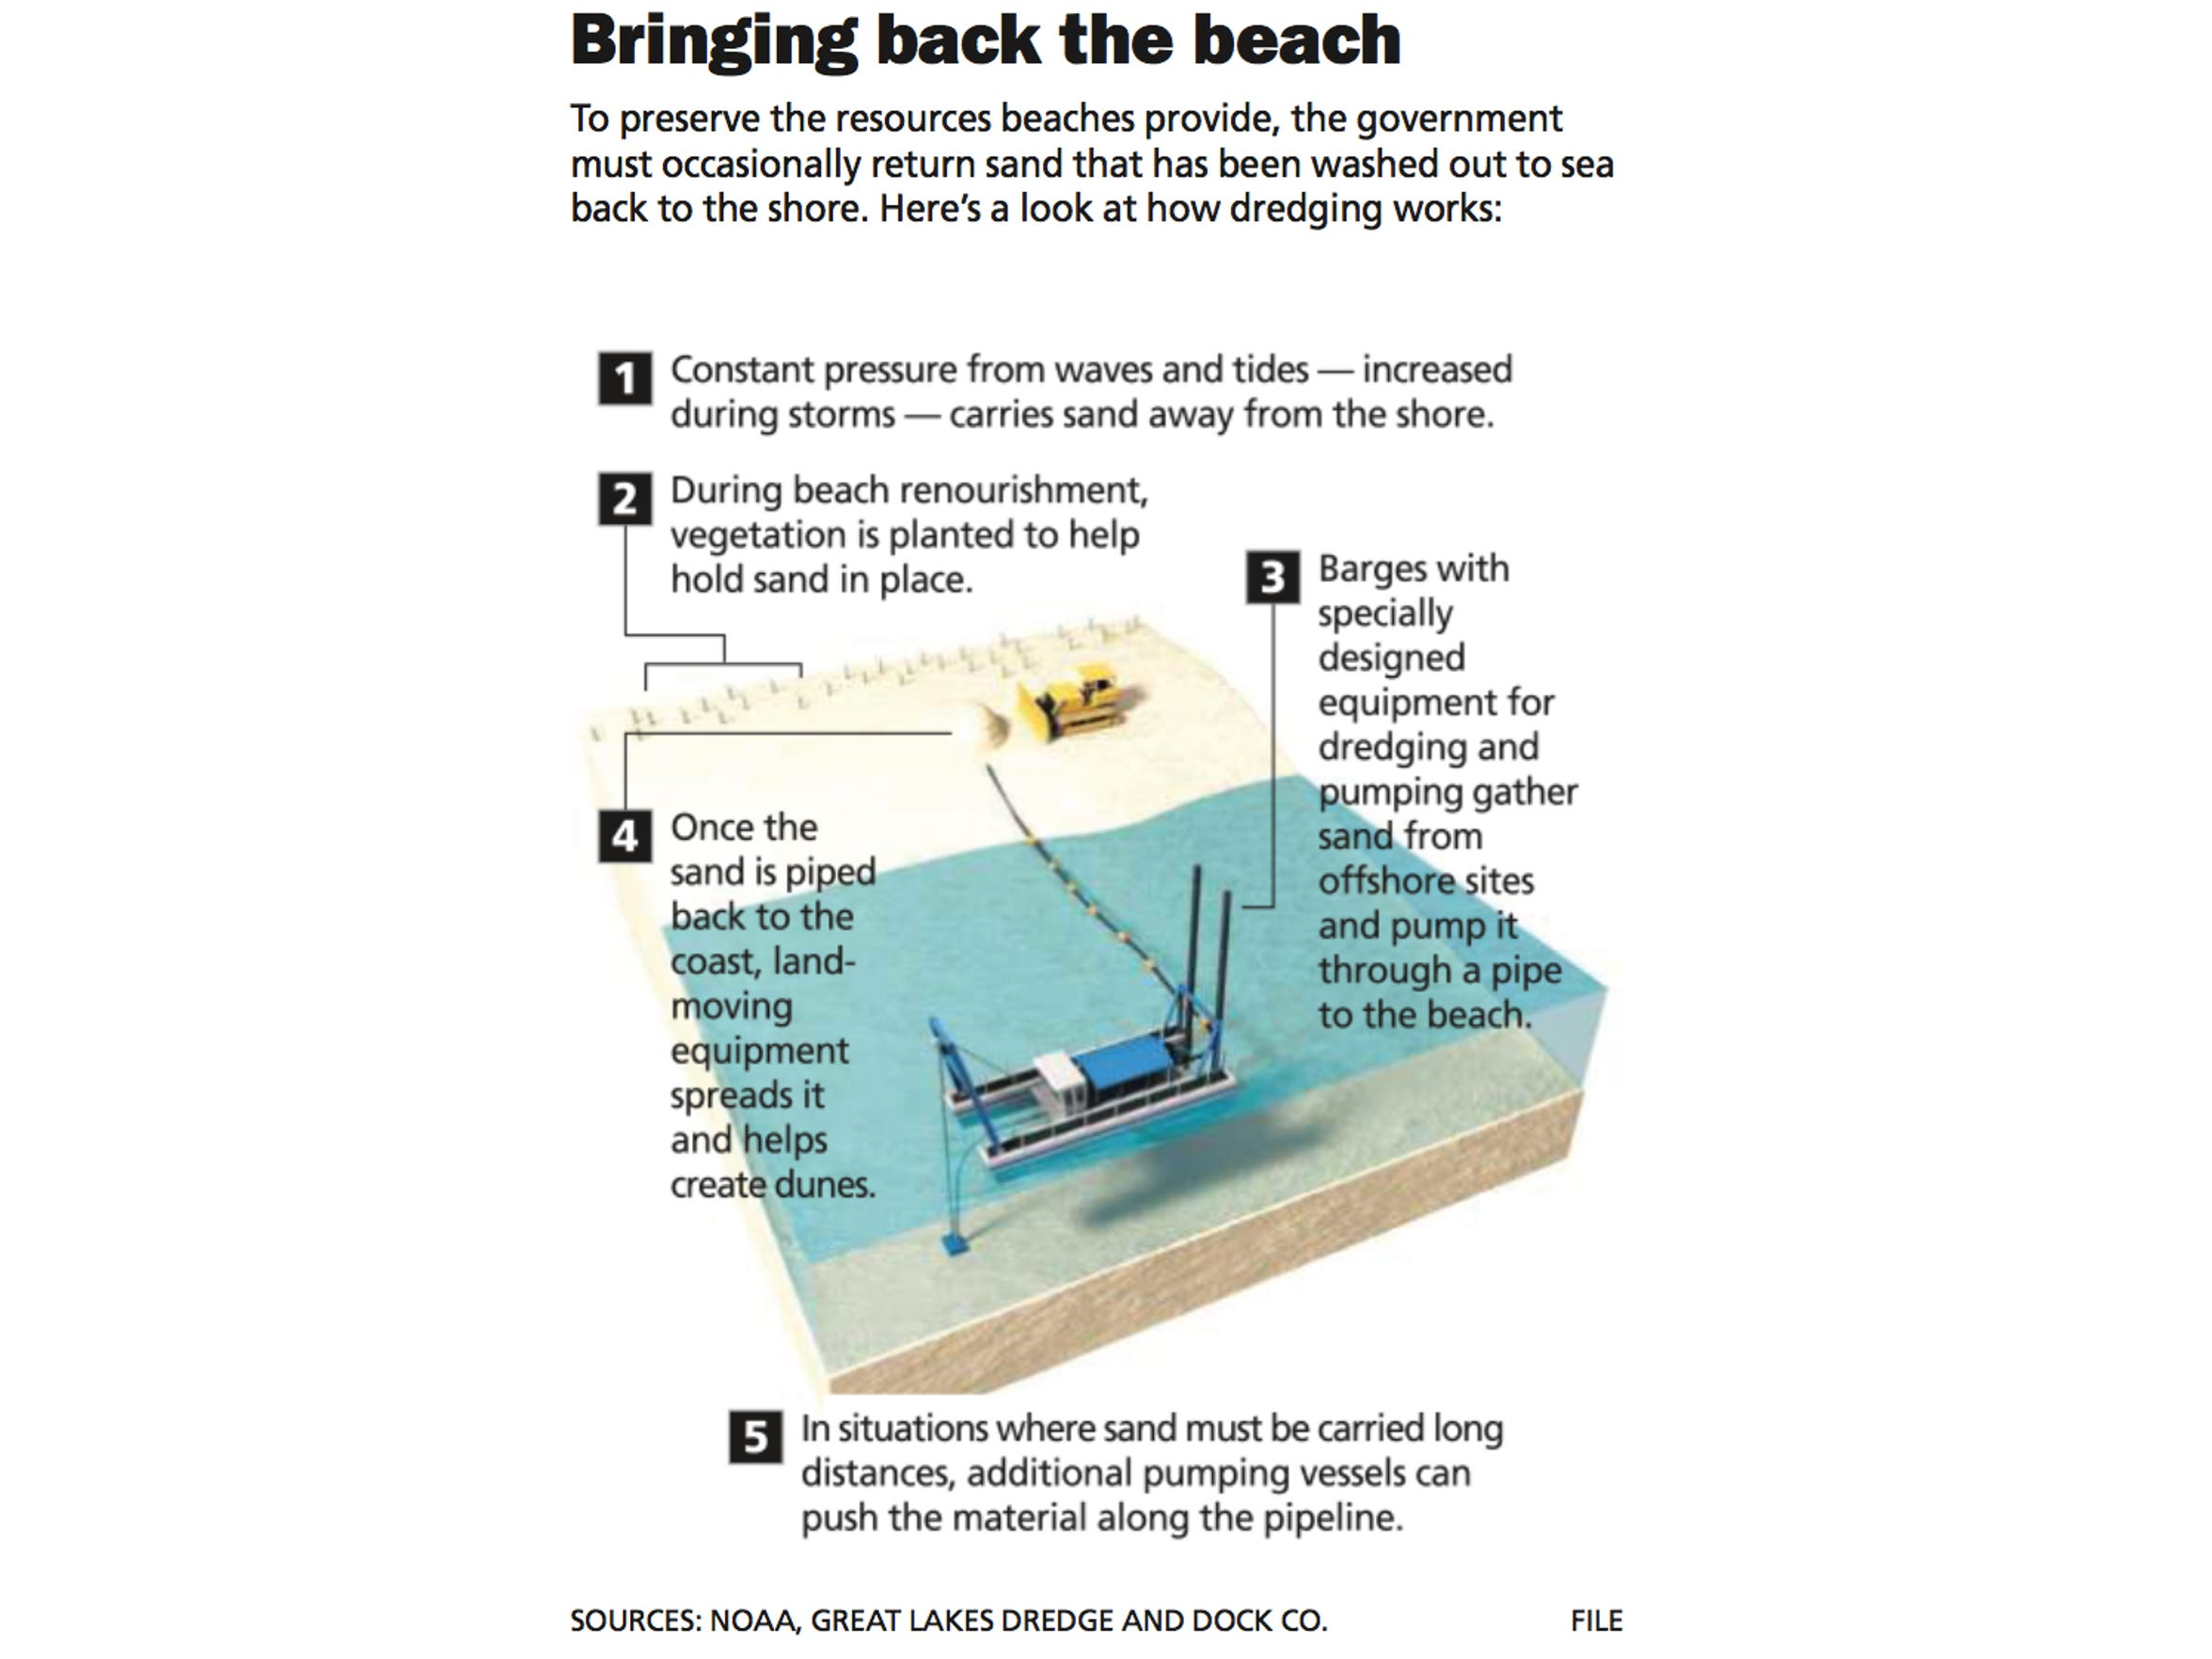 To preserve the resources beaches provide, the government